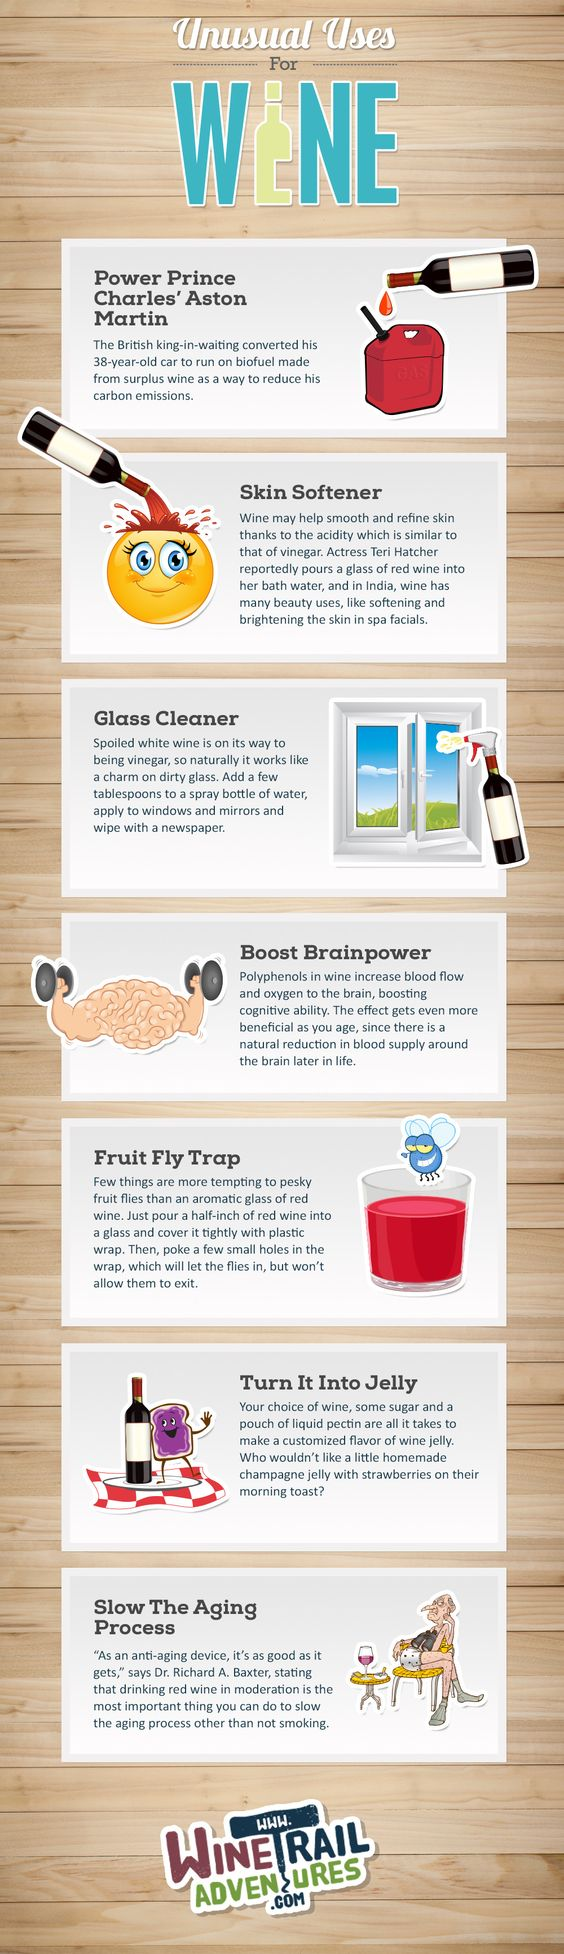 Wine Infographic - Sure wine is great to drink, but did you also know there are other uses for it?  Here are some unusual uses for wine.